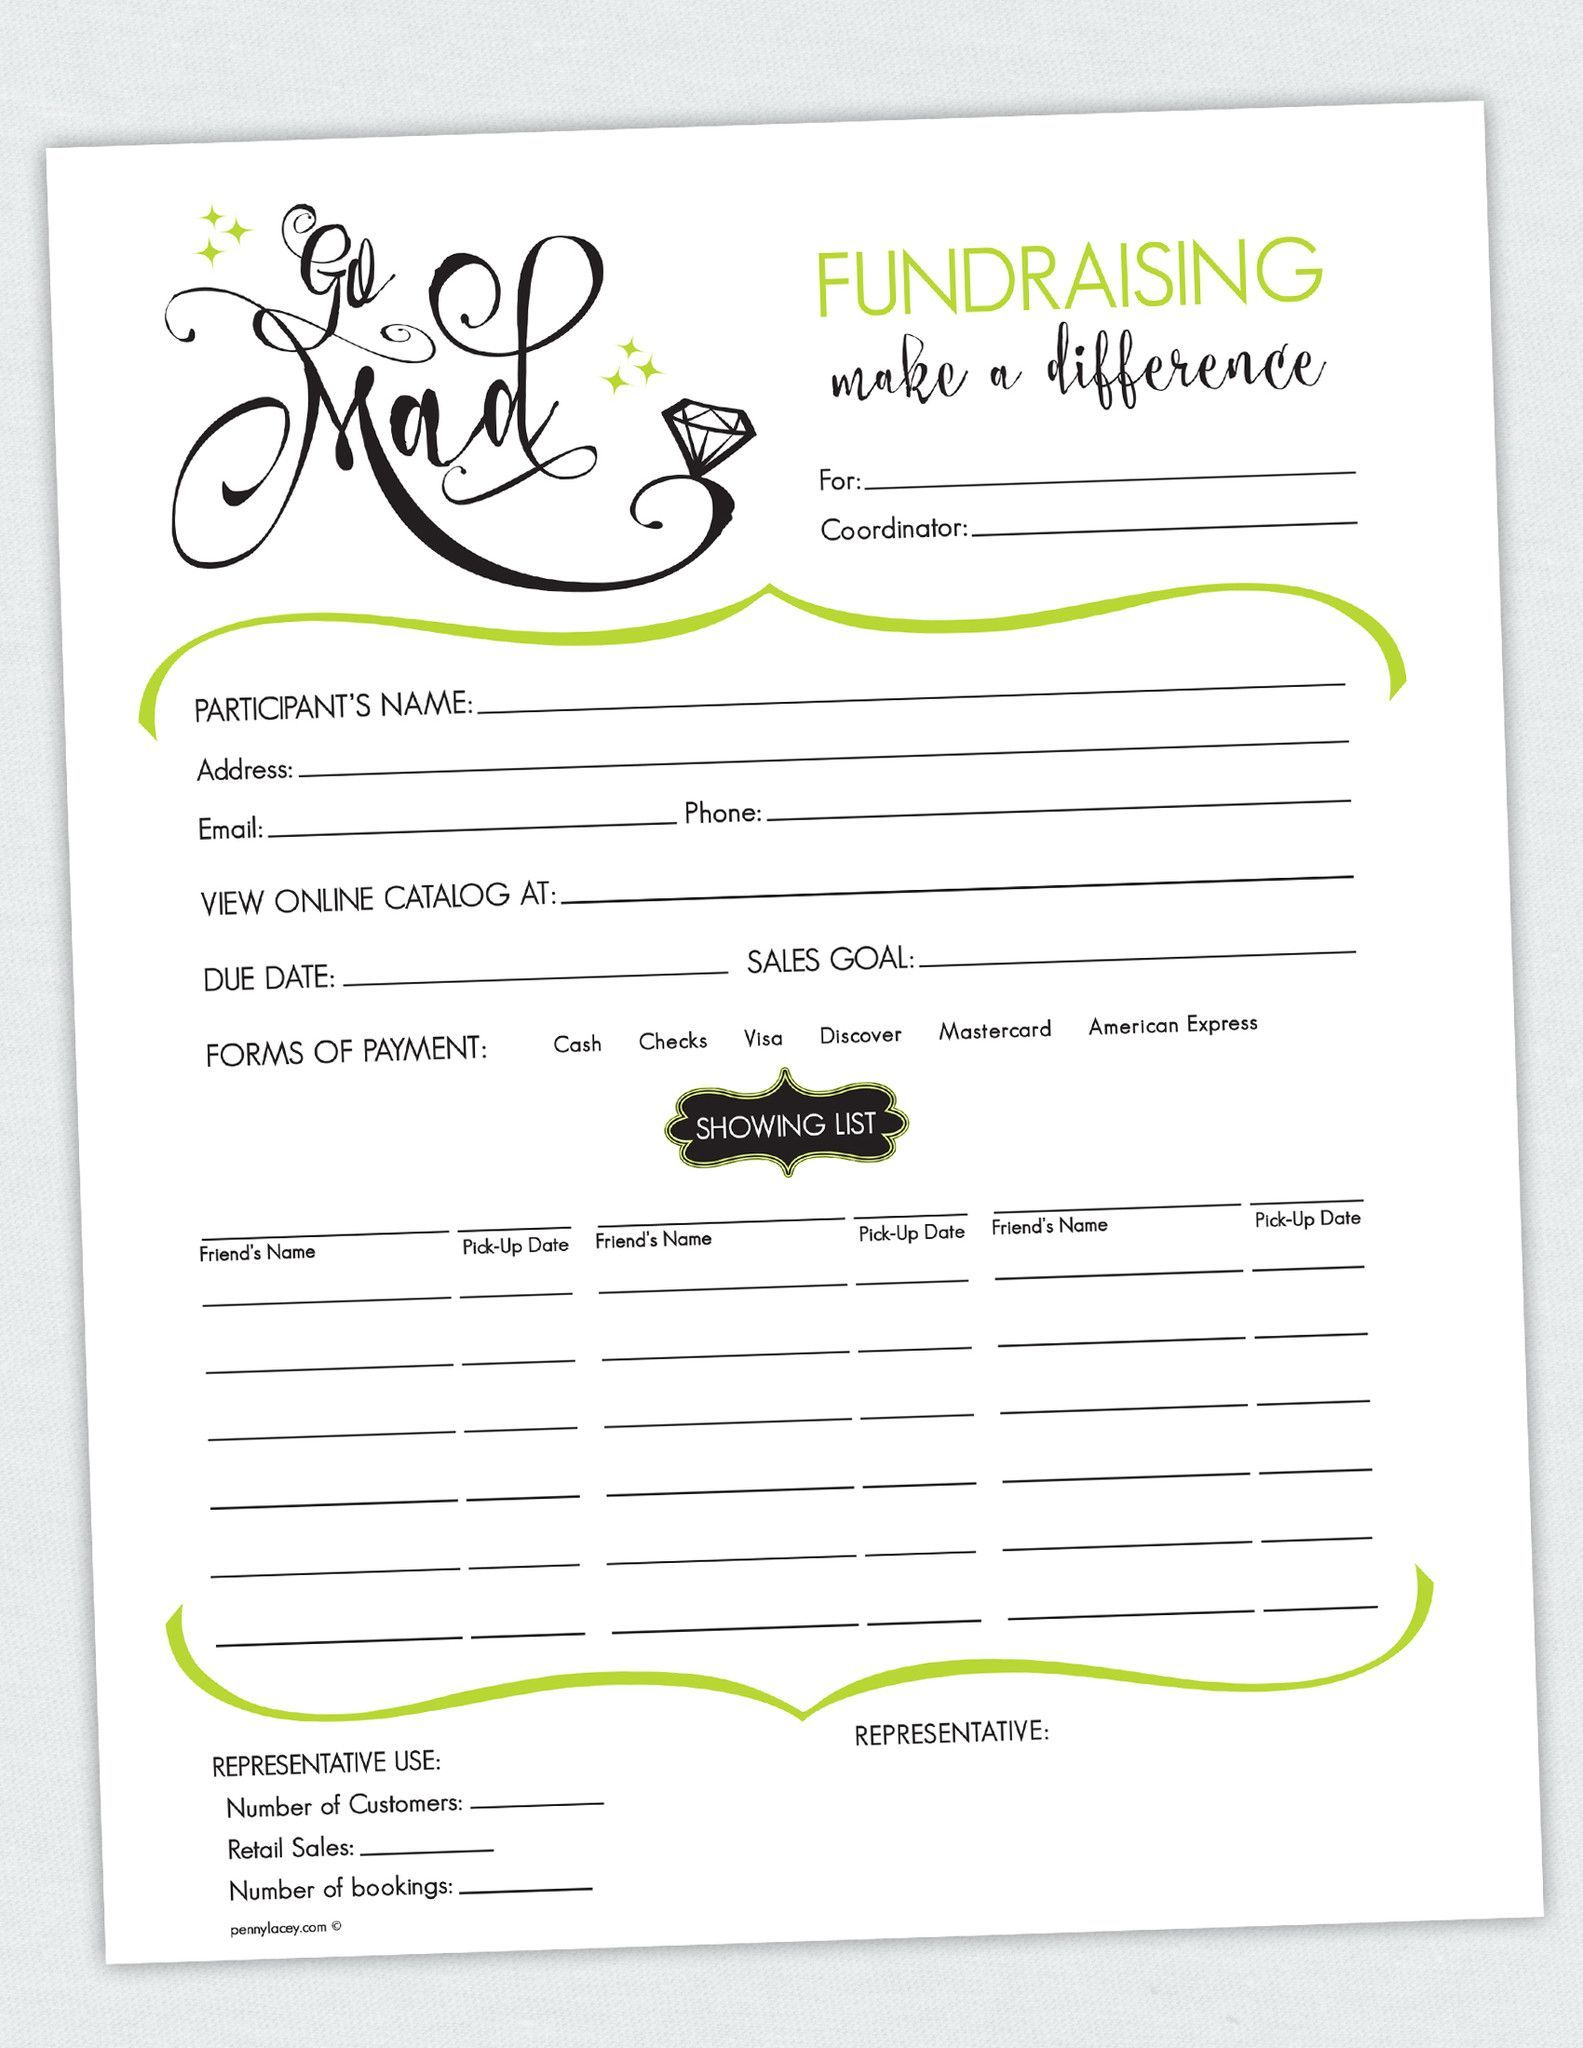 fundraising envelope simple products and envelopes make a difference this unique fundraiser envelope this envelope will make fundraising a simple hassle process white envelope 10 in a pack